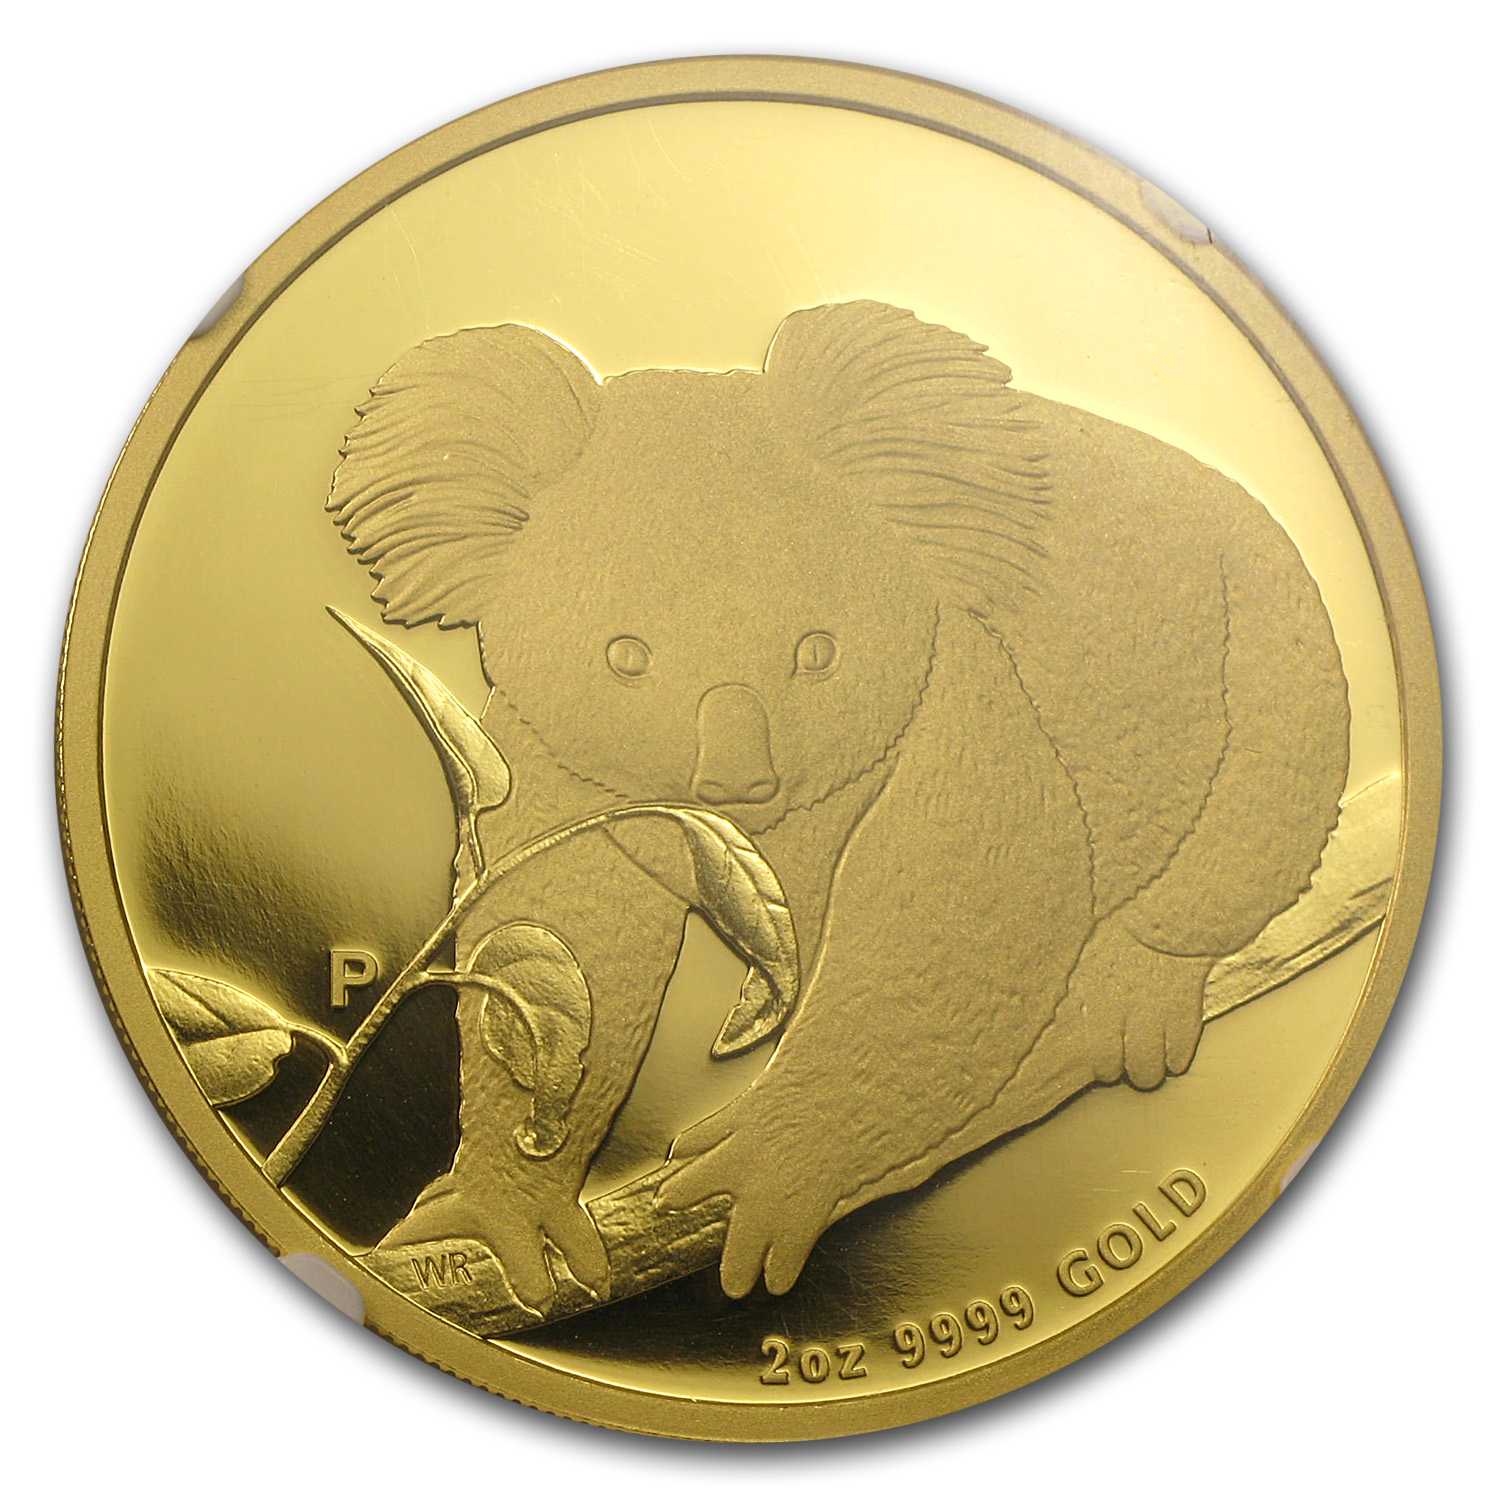 2010 2 oz Proof Australian Gold Koala PF-70 NGC